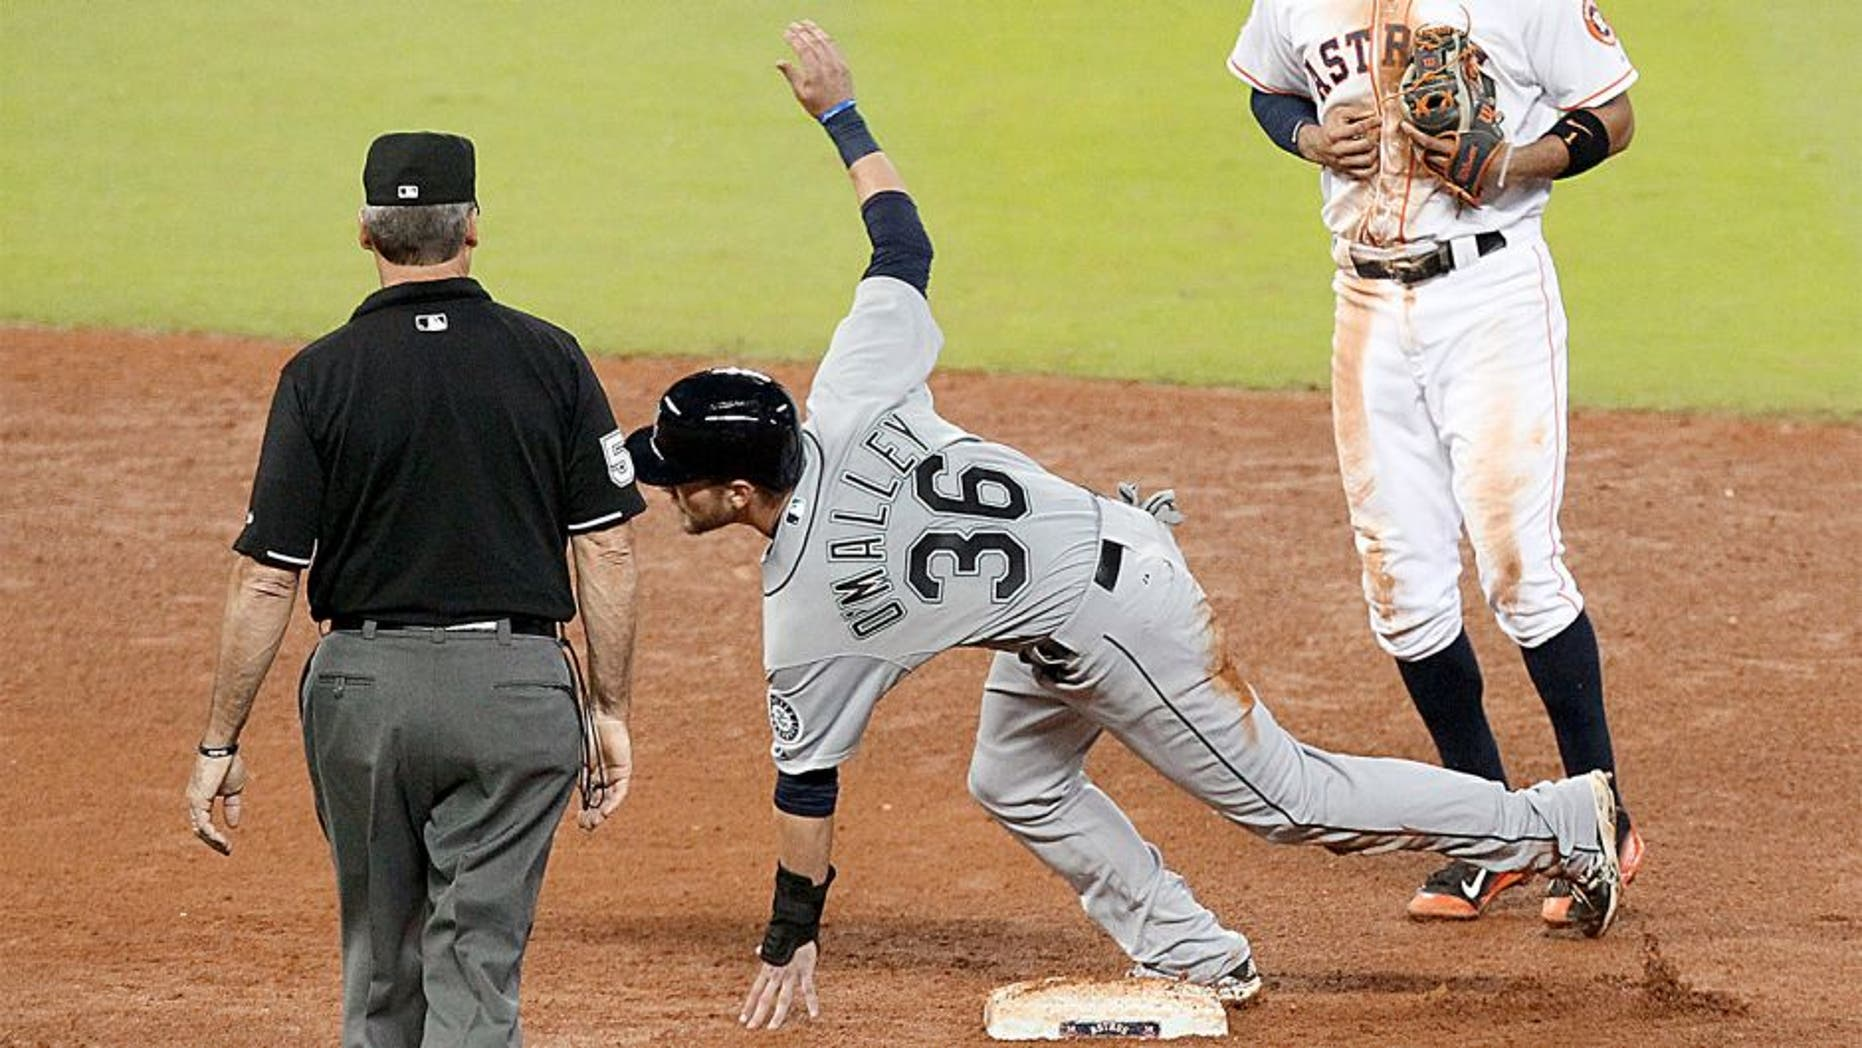 Sep 2, 2015; Houston, TX, USA; Seattle Mariners center fielder Shawn O'Malley (36) steals second base against Houston Astros shortstop Carlos Correa (1) in the top of the seventh inning at Minute Maid Park. Seattle Mariners won 8 to 3. Mandatory Credit: Thomas B. Shea-USA TODAY Sports